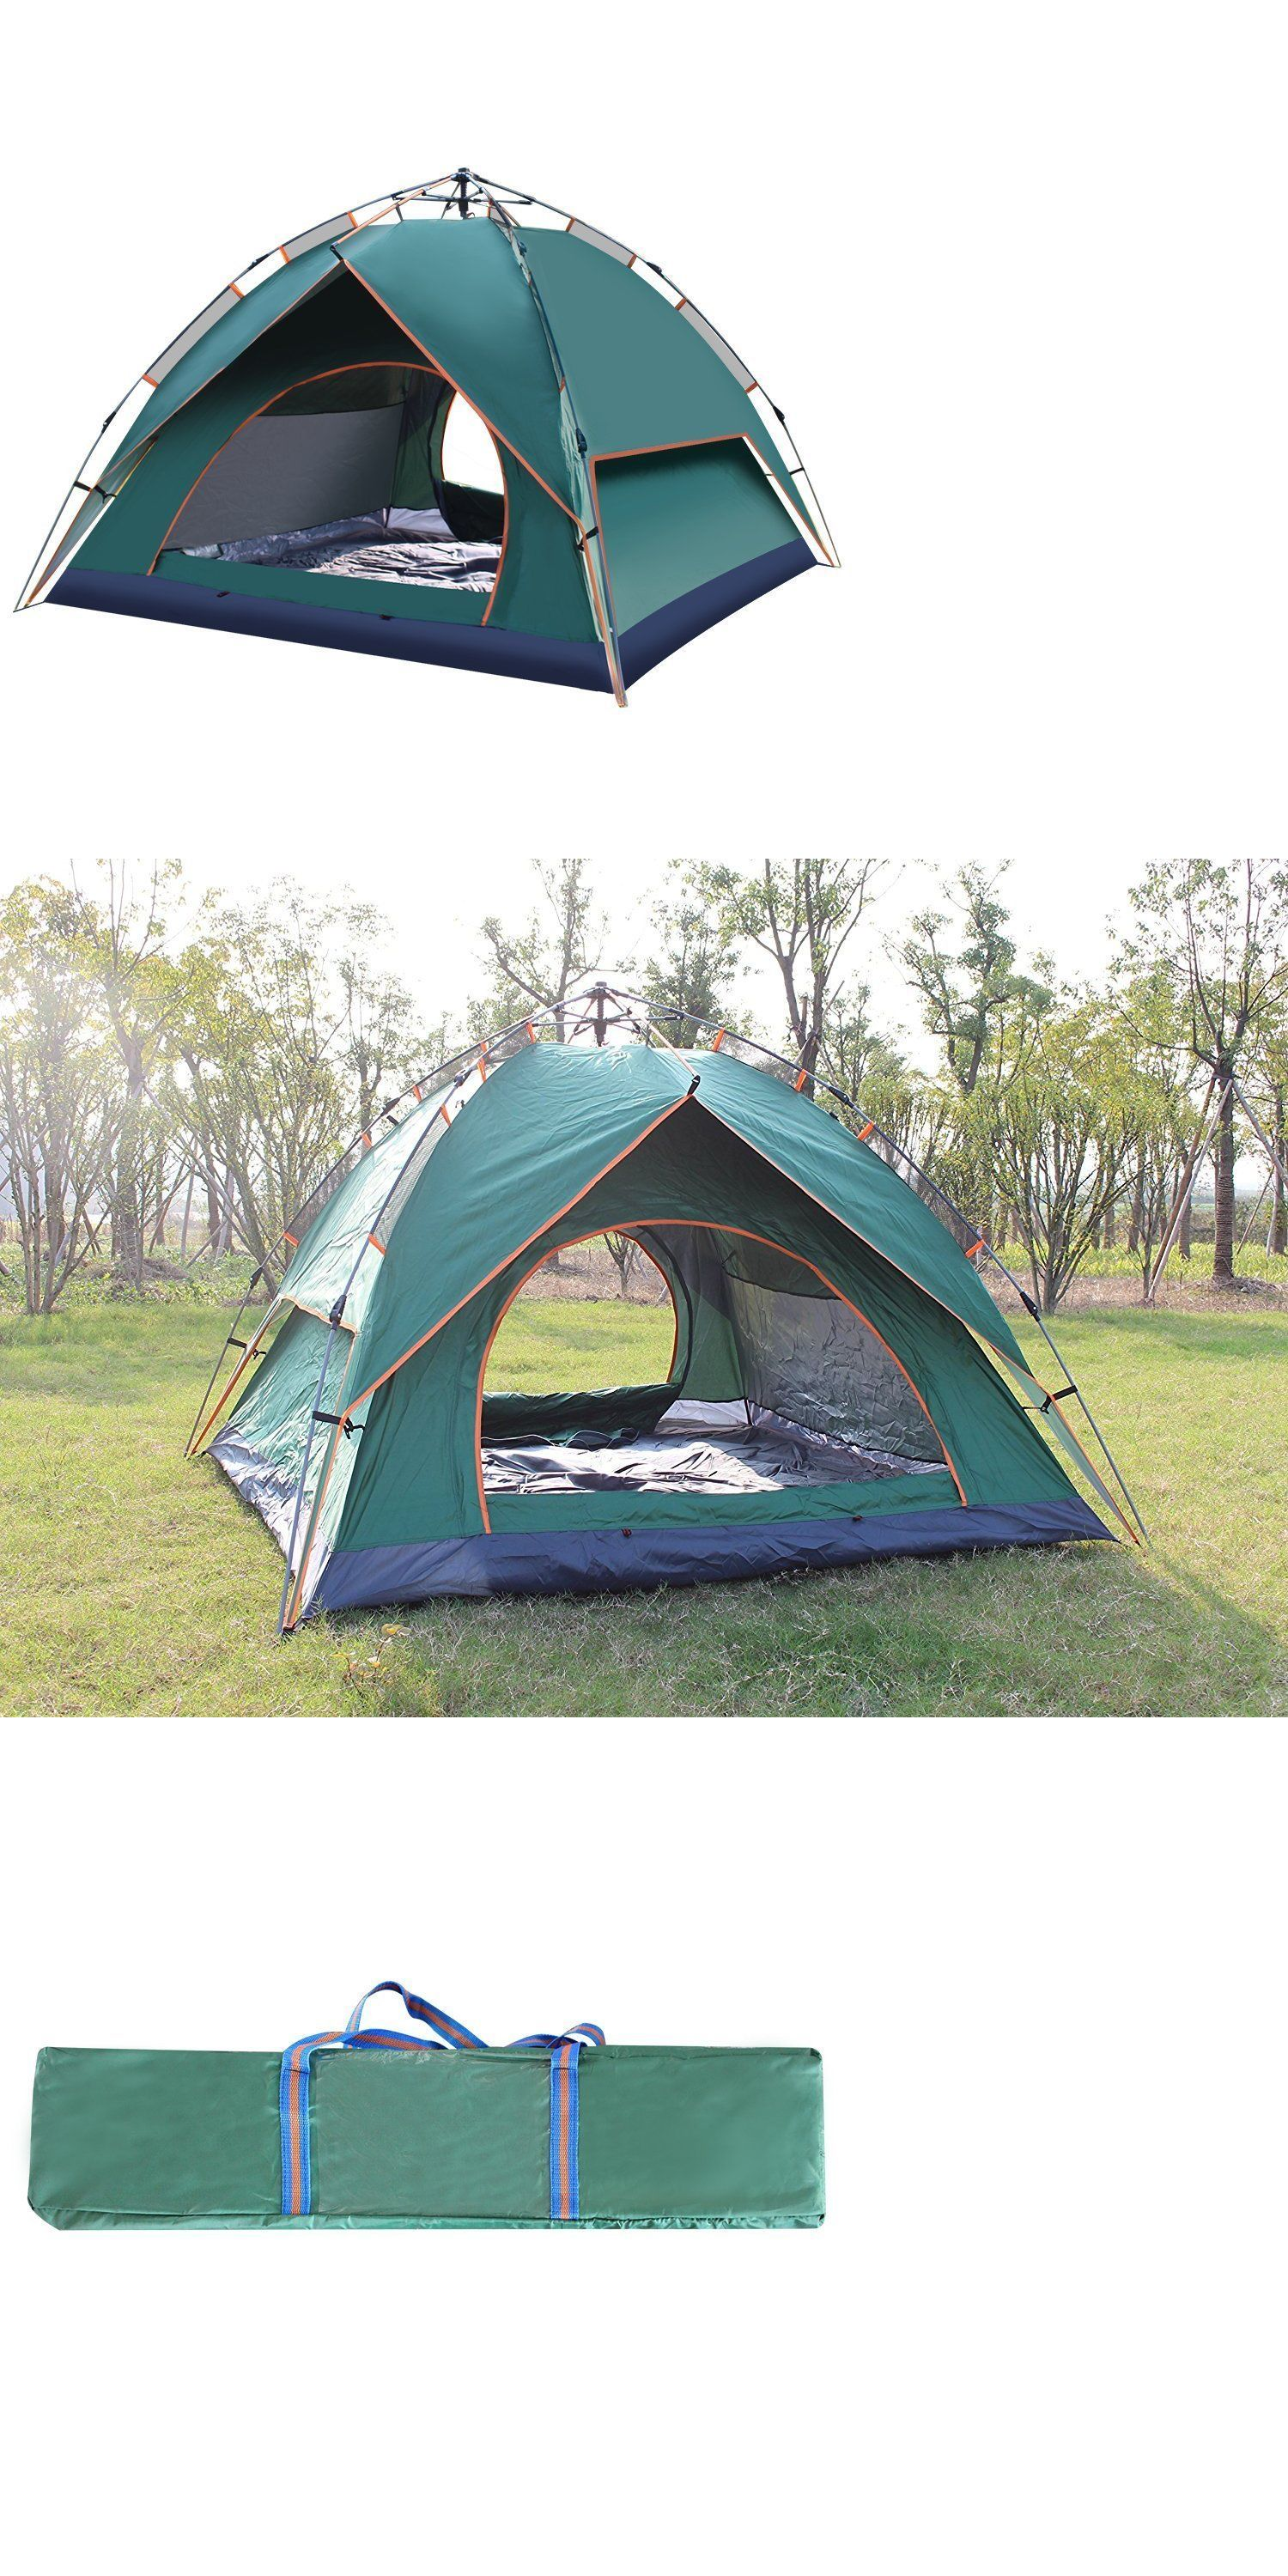 Tents 179010 3-4 Person 4 Season Tent Automatic Pop Up Tents Anti  sc 1 st  Pinterest & Tents 179010: 3-4 Person 4 Season Tent Automatic Pop Up Tents ...